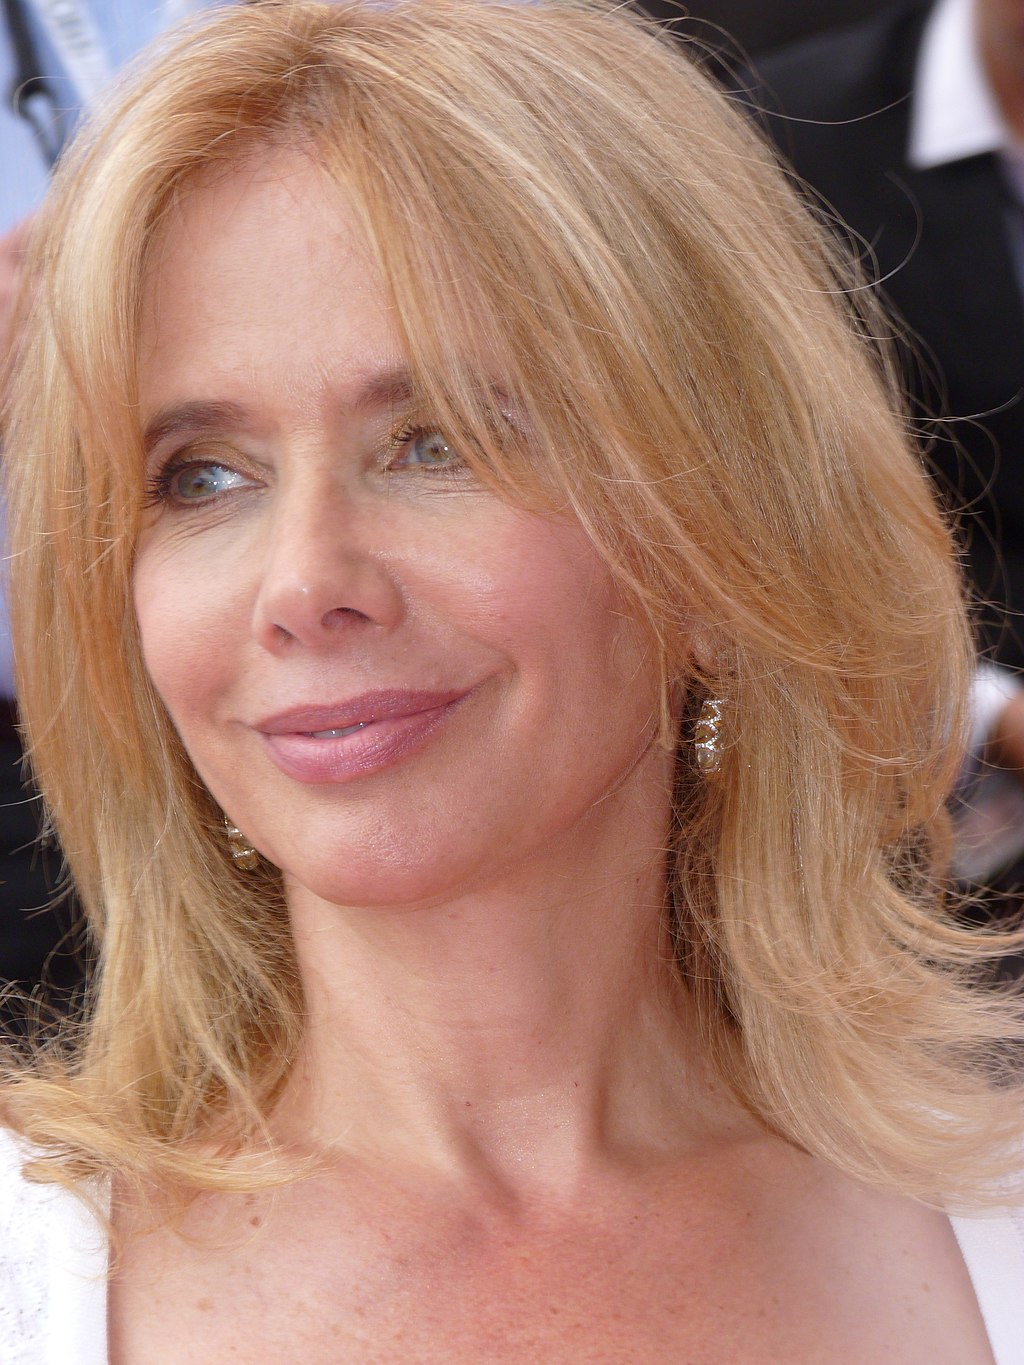 Actress Rosanna Arquette signed the letter to support Asia Argento. Image Source:  Frantogian